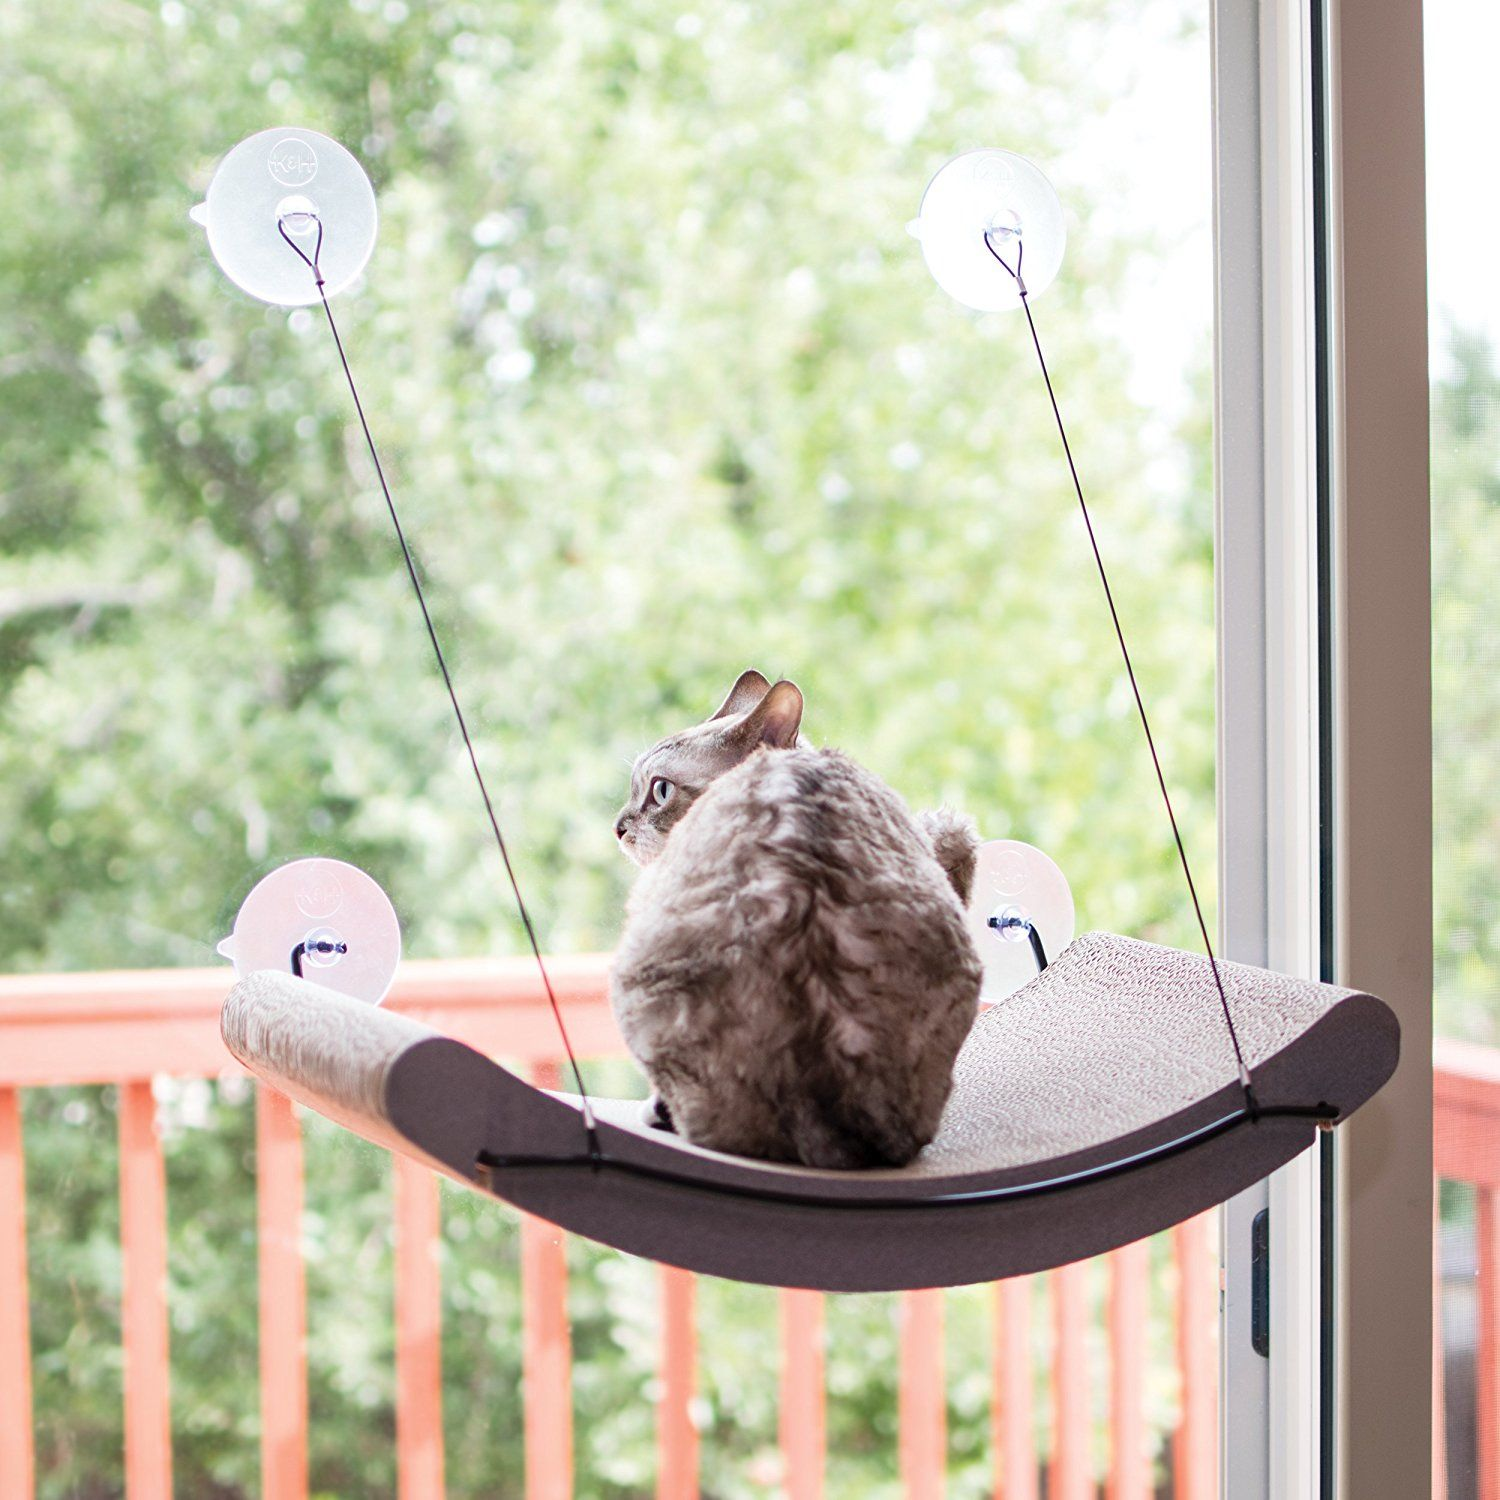 Window bed for cats  kandh manufacturing ez mount scratcher kitty sill cradle tan